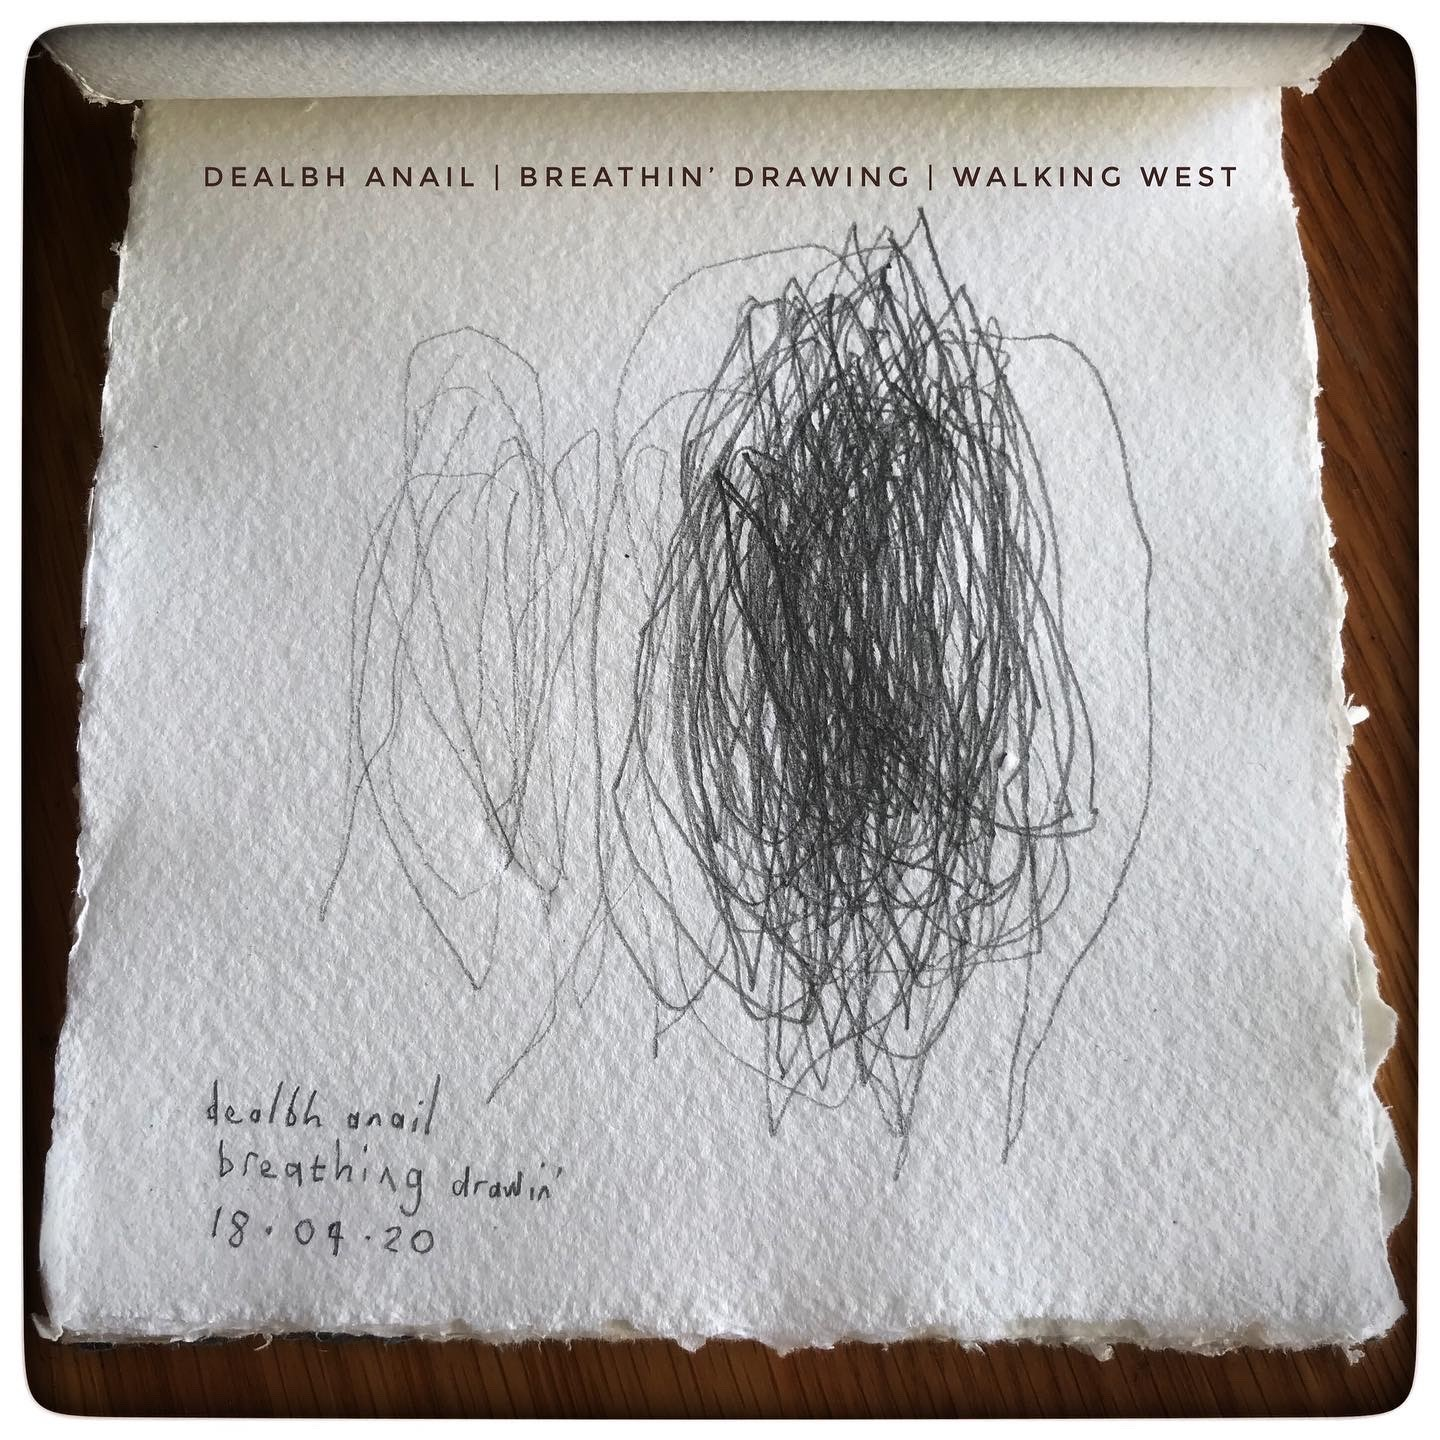 The image depicts a line drawing in graphite on thick khadi paper. There is text above and below which reads 'Dealbh Anail, Breathin' Drawing, Walking West, 18/04/20'.